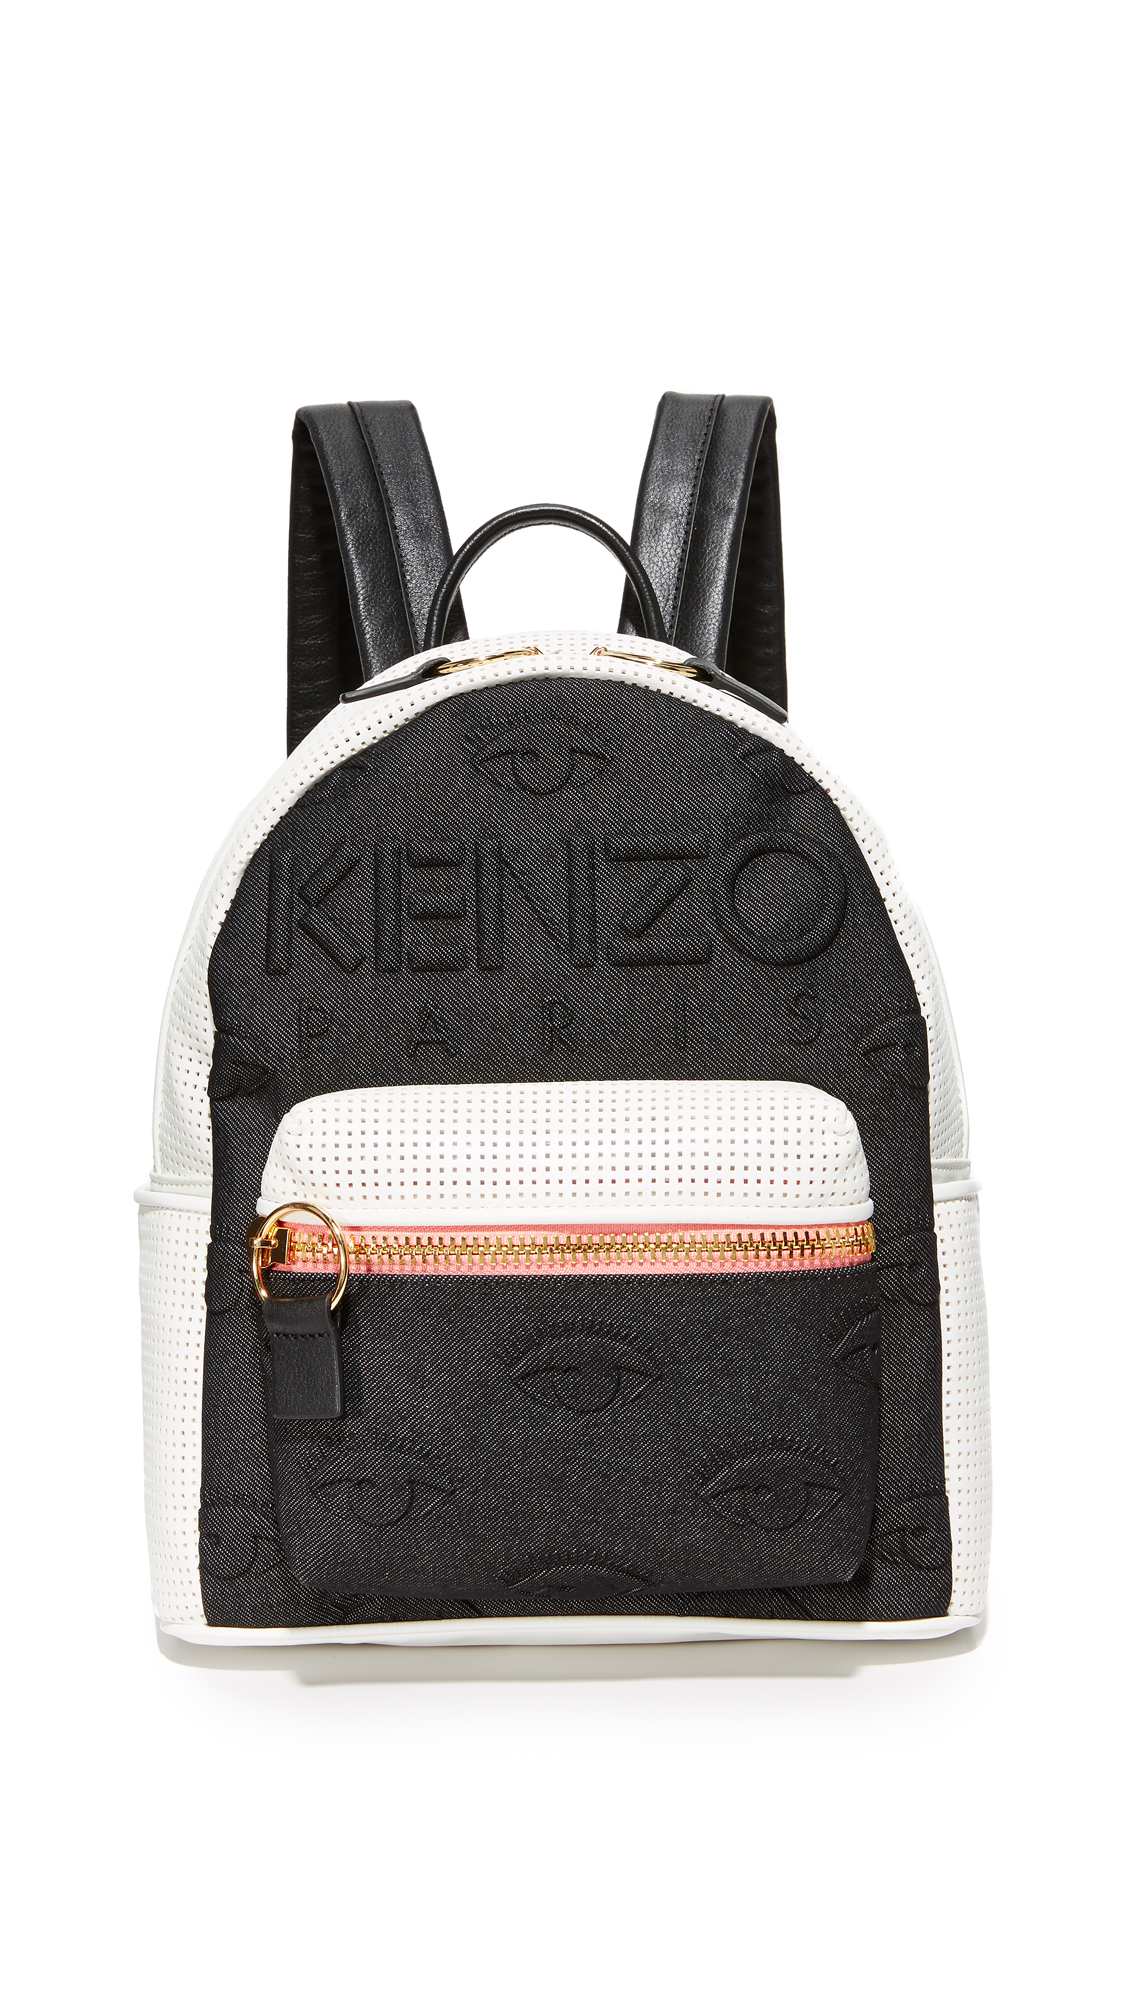 A colorful KENZO backpack made from padded neoprene and perforated leather. Zip front pocket and slim side pockets. The wraparound top zip opens to a lined interior with 3 pockets. Locker loop and adjustable shoulder straps. Dust